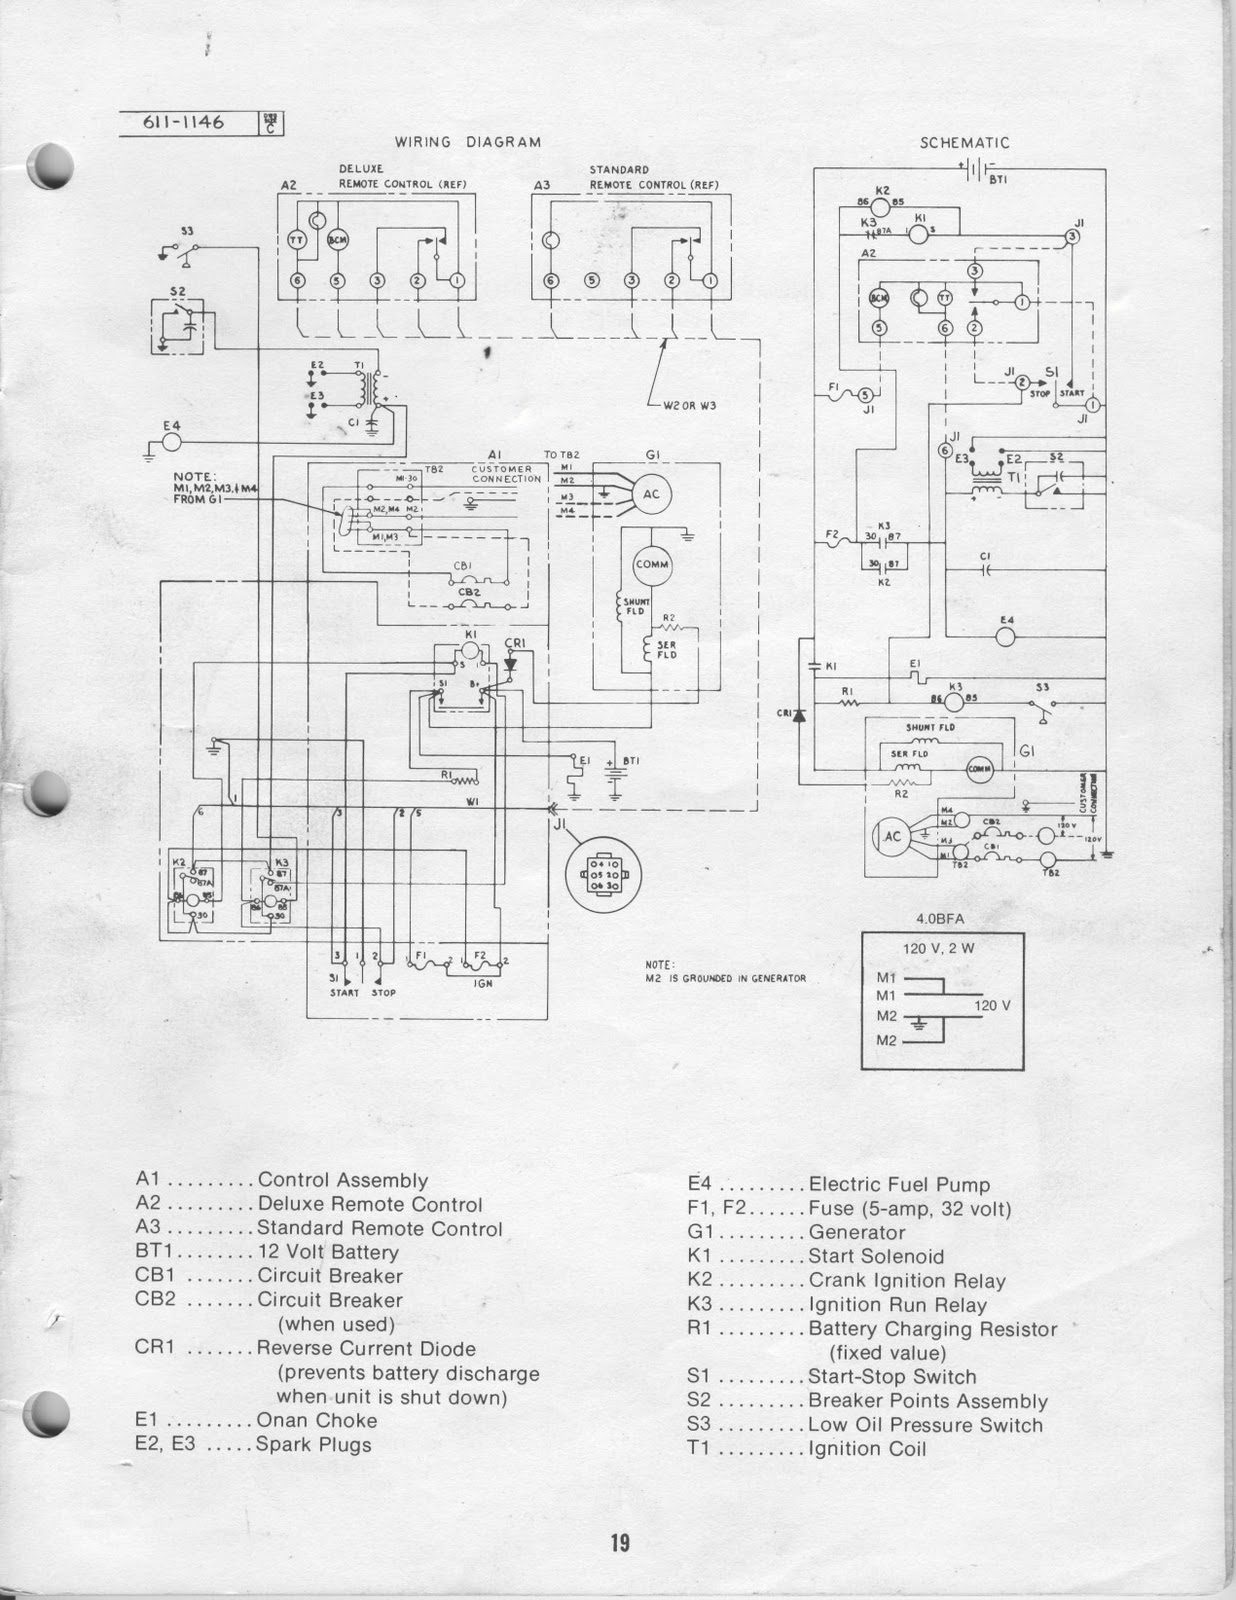 onan generator manual wireing diagram